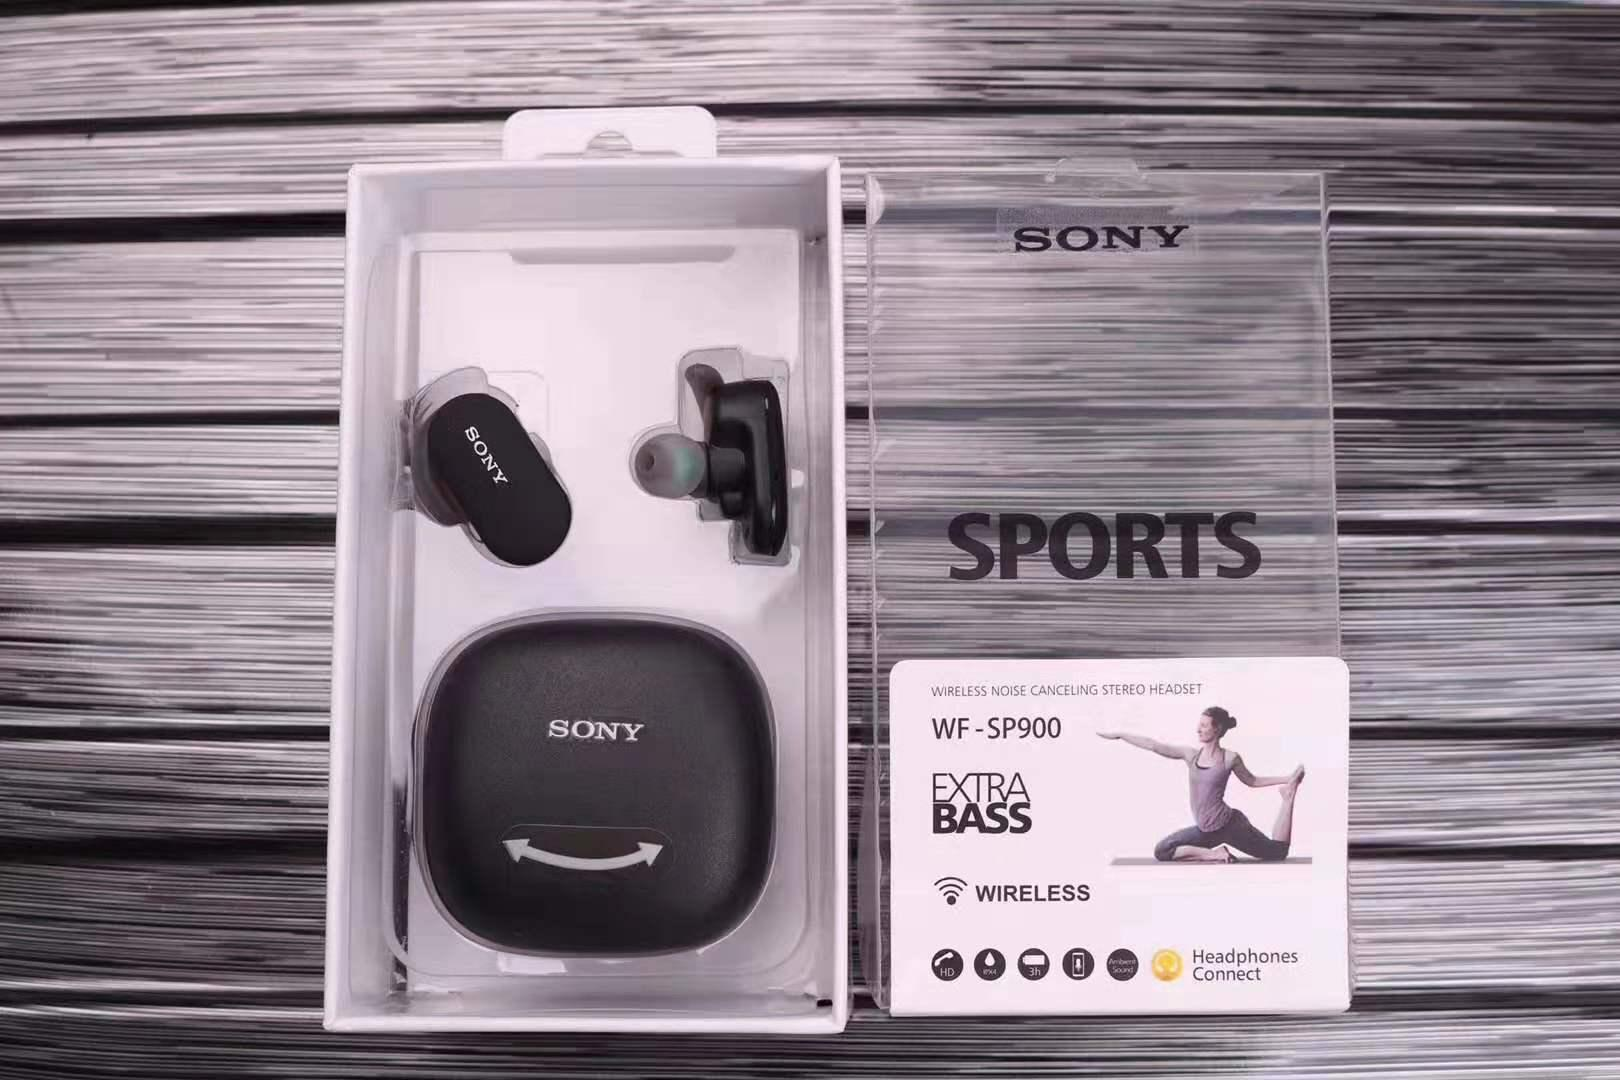 2020 Wireless Bluetooth Headset Sony Wf Sp900 Car Bluetooth Headset Dual Ear Sports In Ear Headphones 003 From Atm Dhgate 2 37 27 Dhgate Com